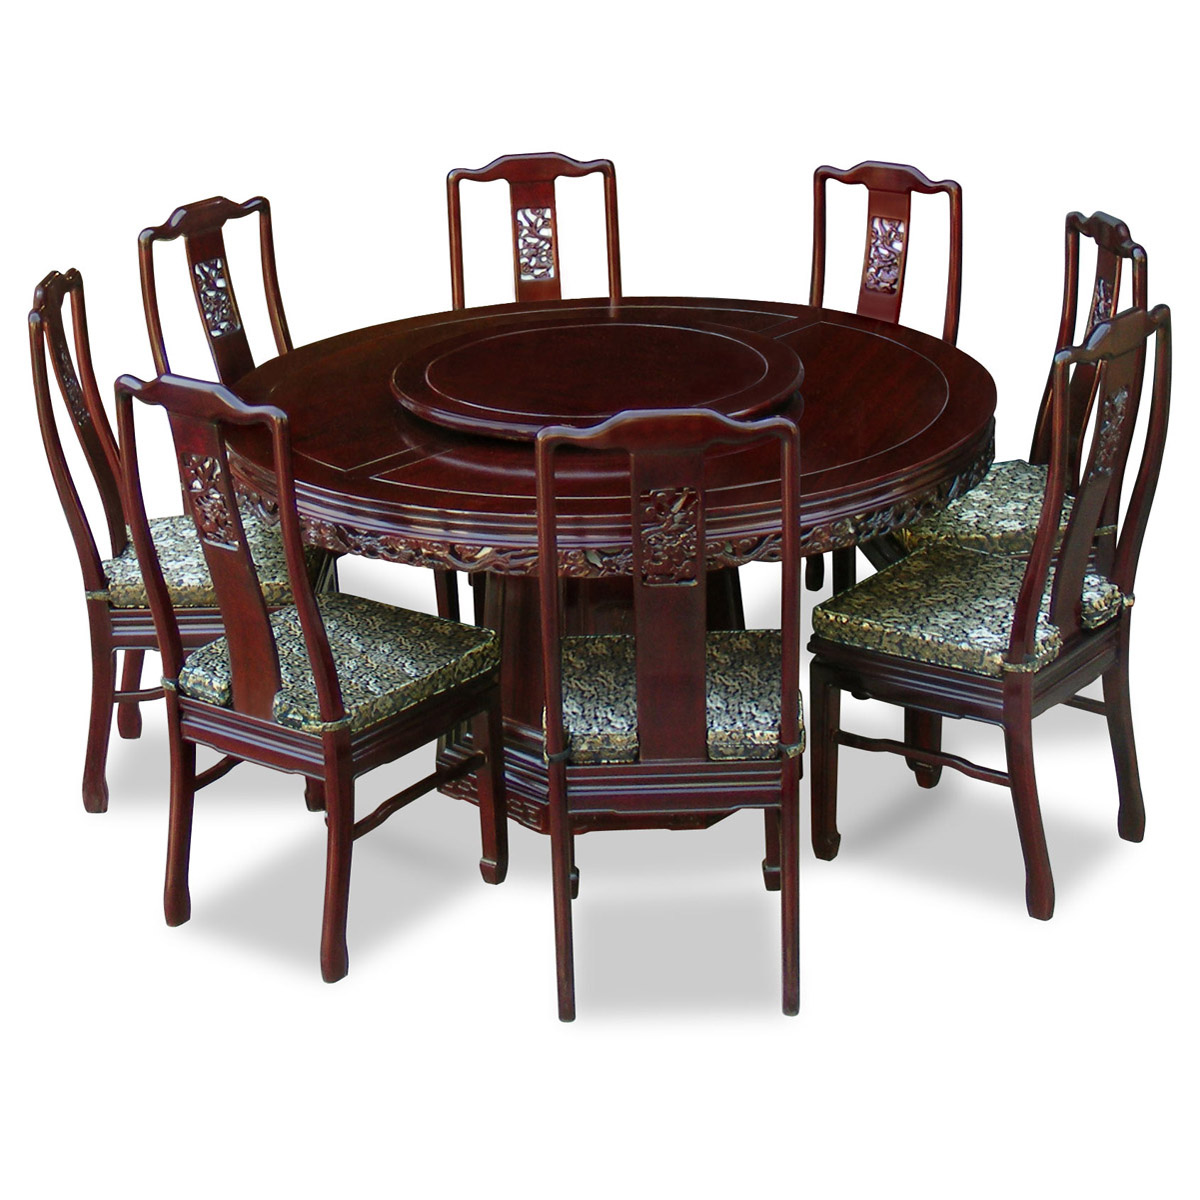 Perfect 8 Person Round Dining Table HomesFeed : Awesome Seat Of 8 Person Round Dining Table from homesfeed.com size 1200 x 1200 jpeg 277kB